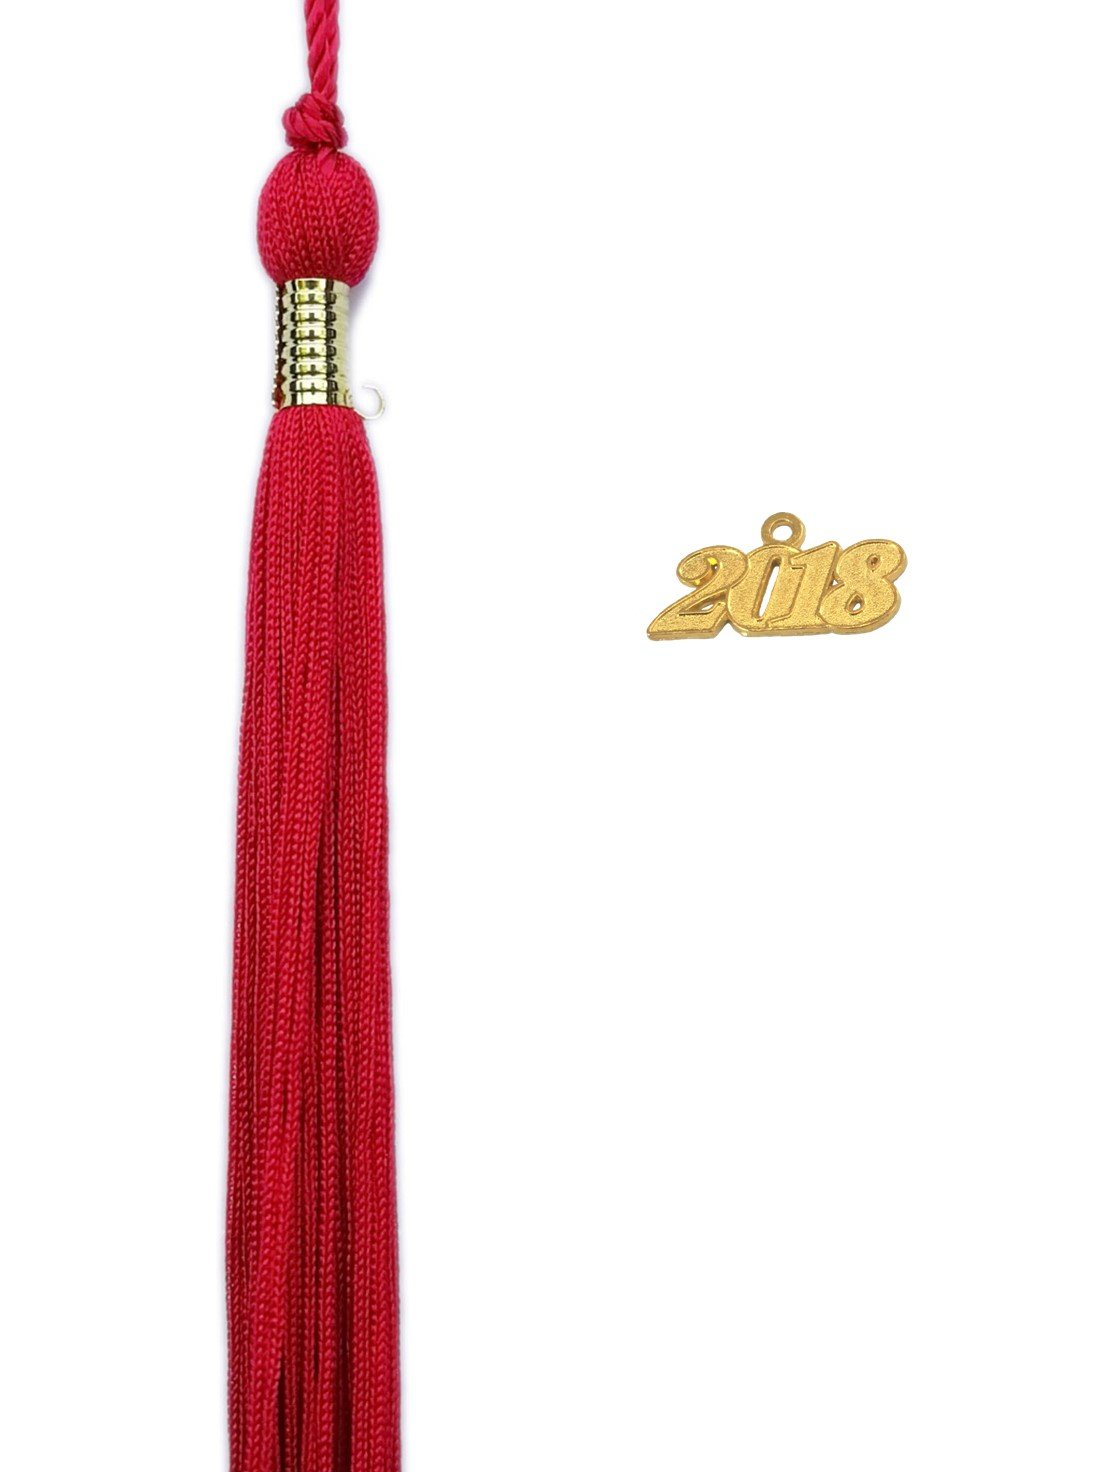 Royal Blue and Gold Graduation Tassel Year 2018 with gold charm MultiColor Quality Grad